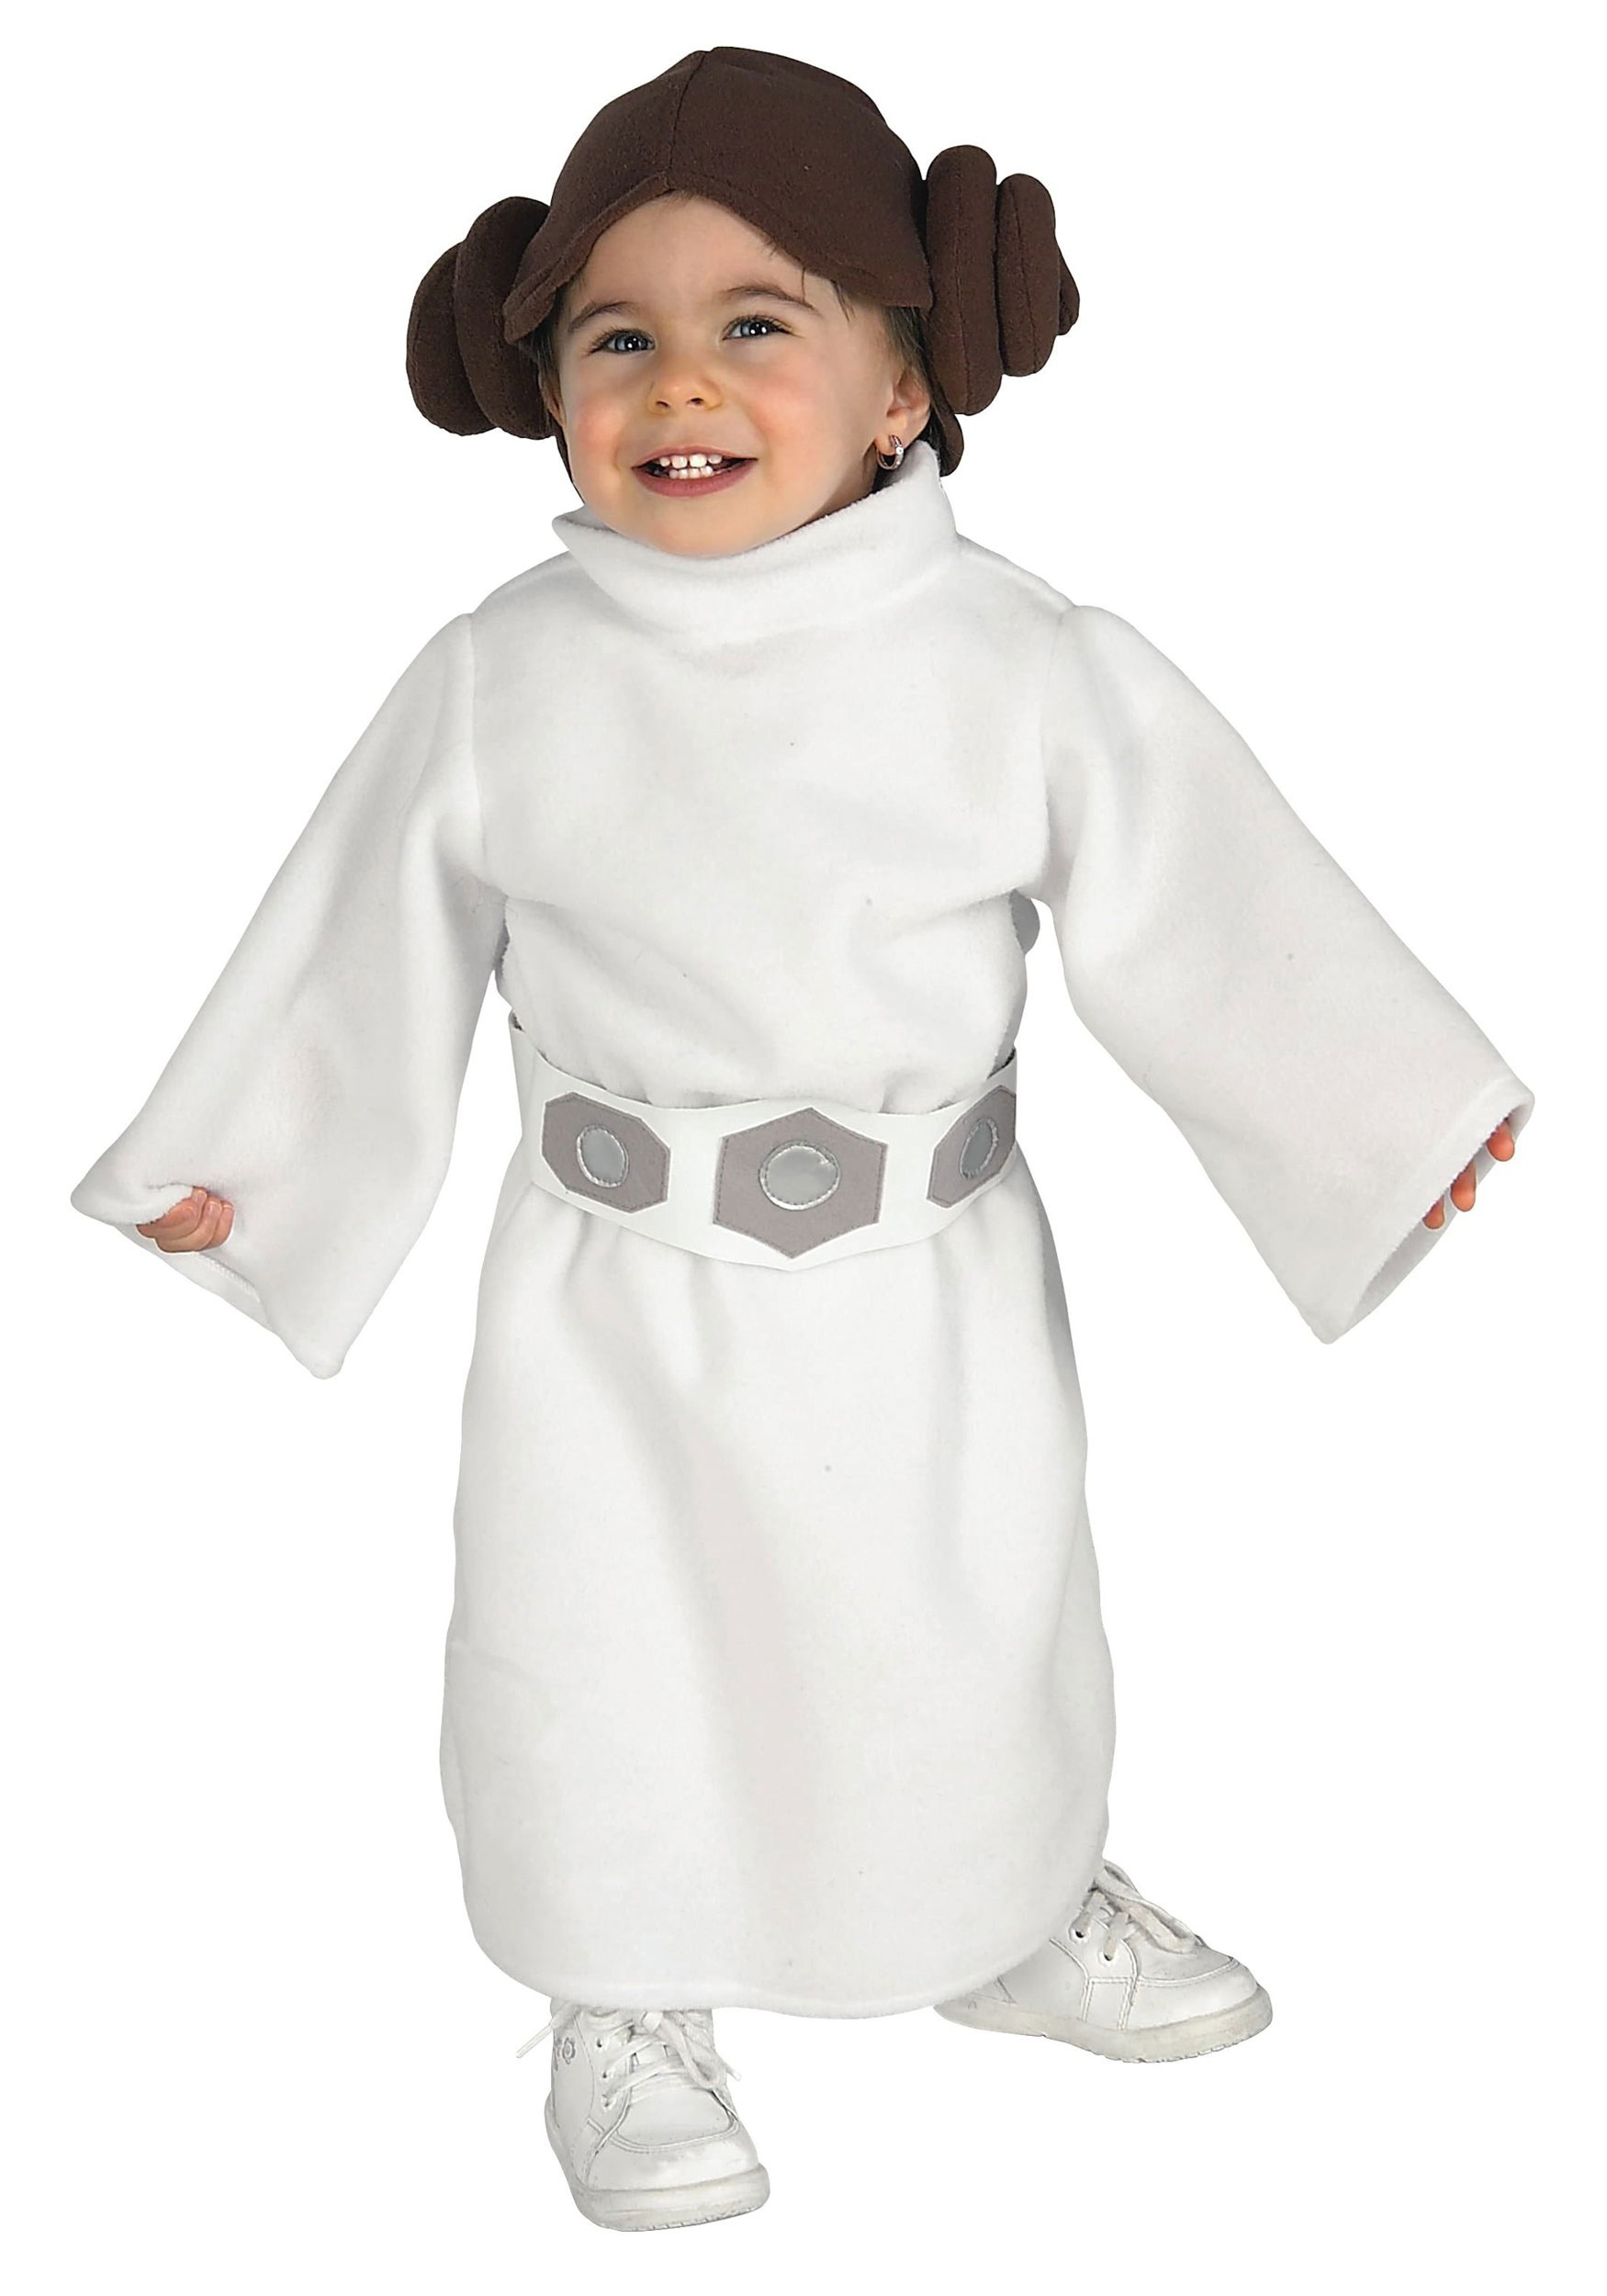 Princess Leia Toddler  sc 1 st  Halloween Costume & Princess Leia Toddler - Baby Princess Leia Star Wars Costumes